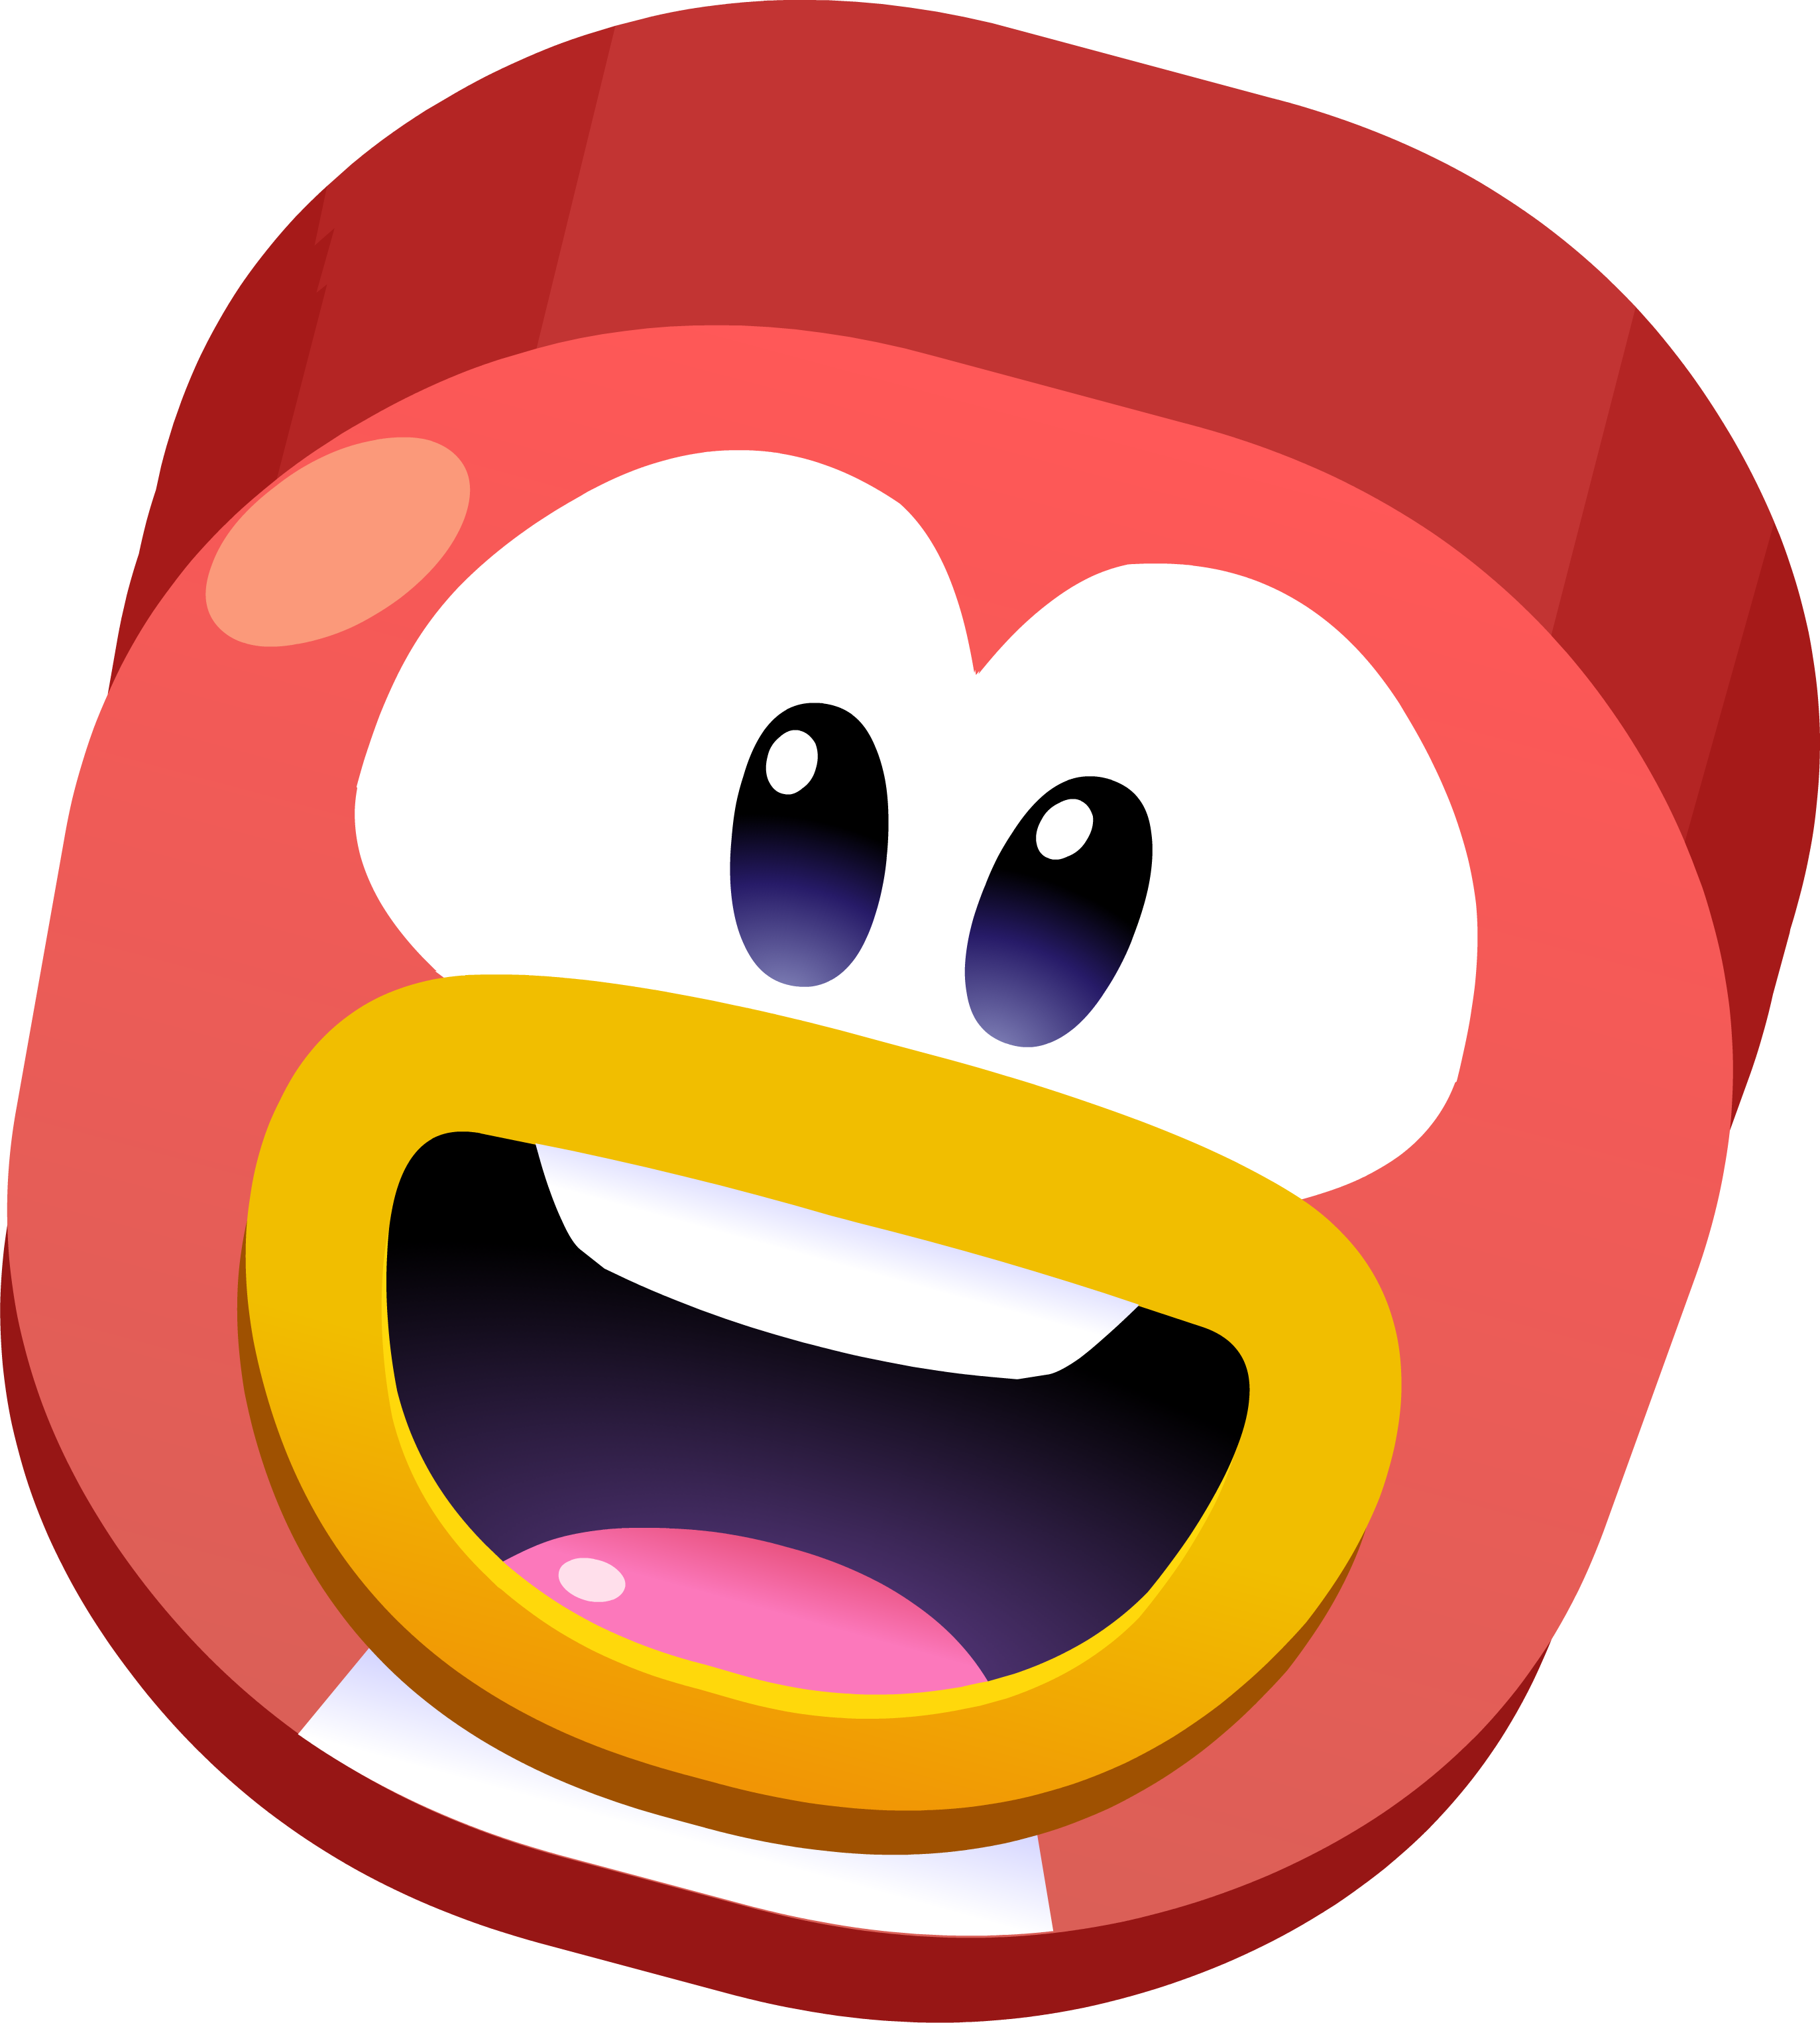 Hitler emoji png. Image cpi party plaza